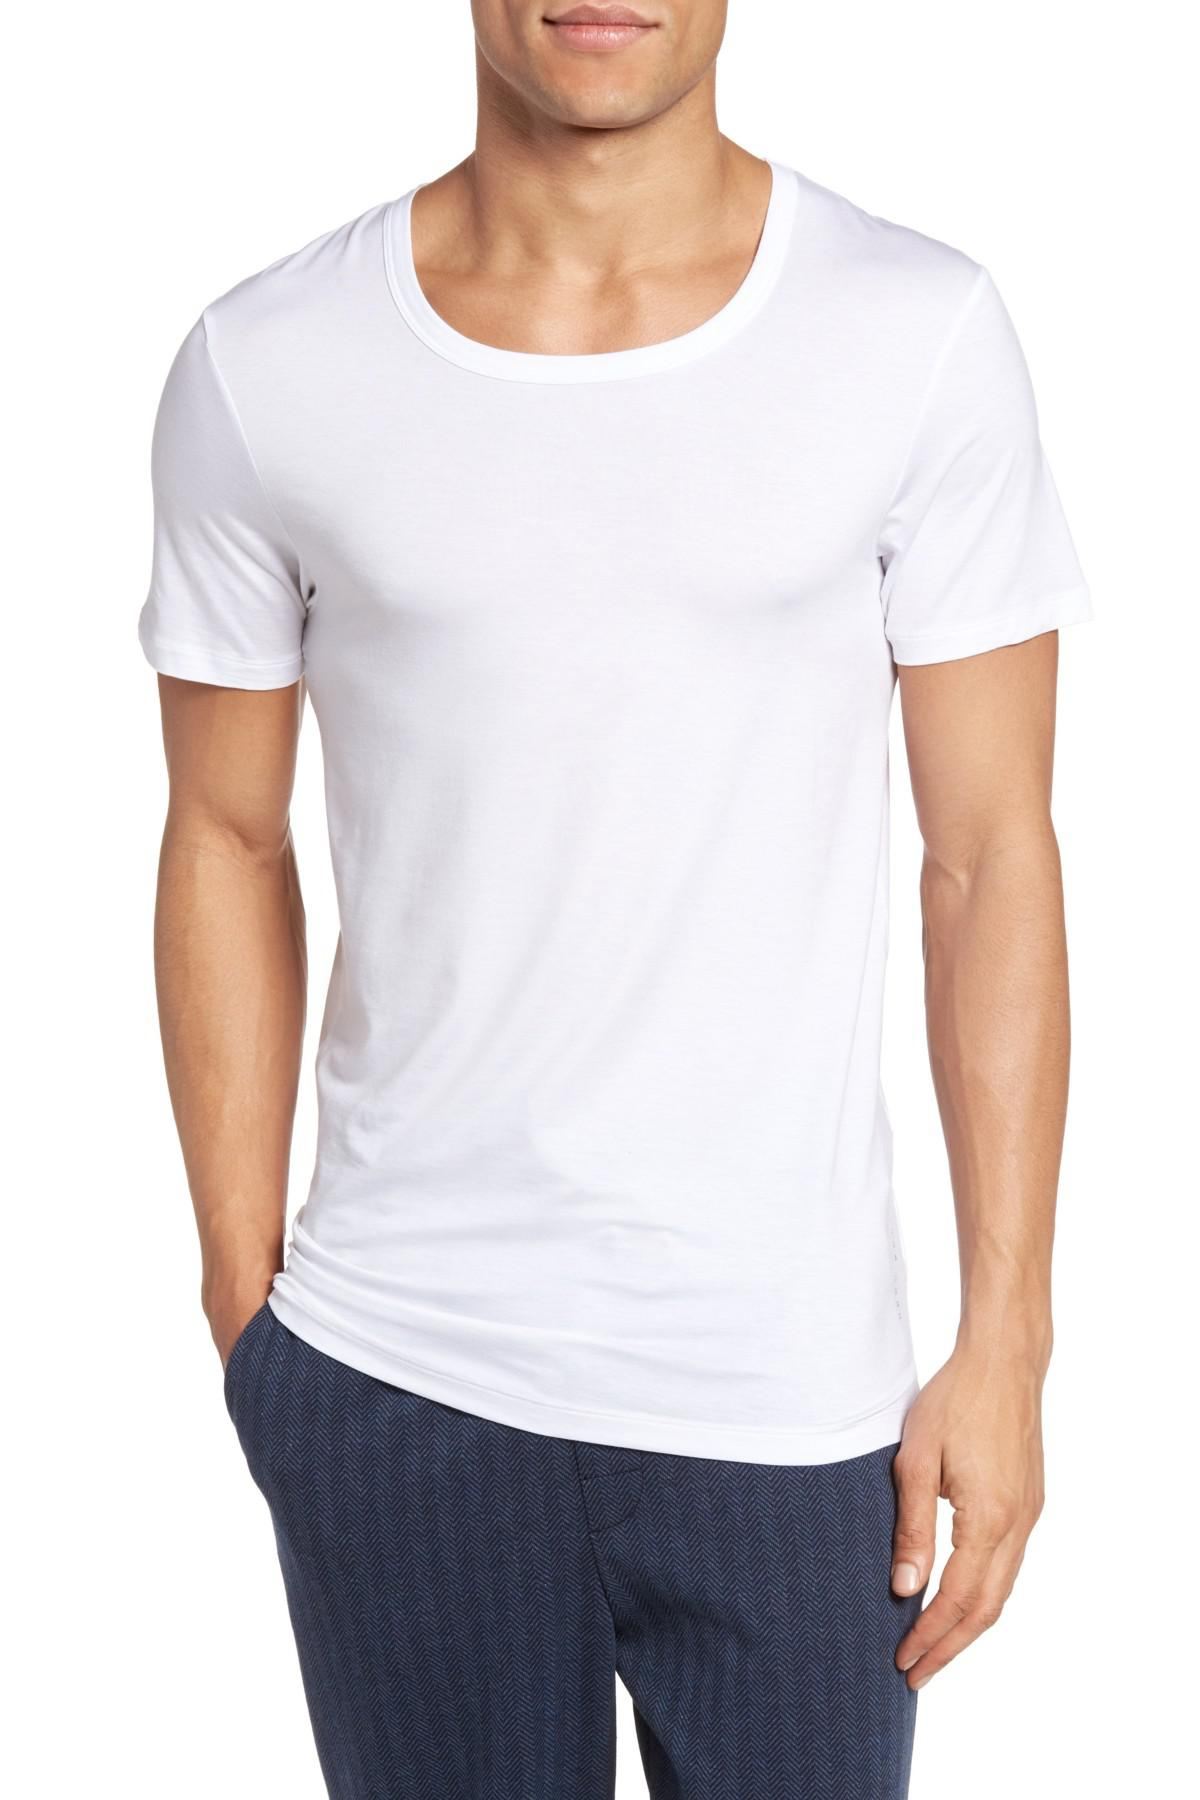 e7a5b40a4fa9f Lyst - BOSS Seacell(r) Blend T-shirt in White for Men